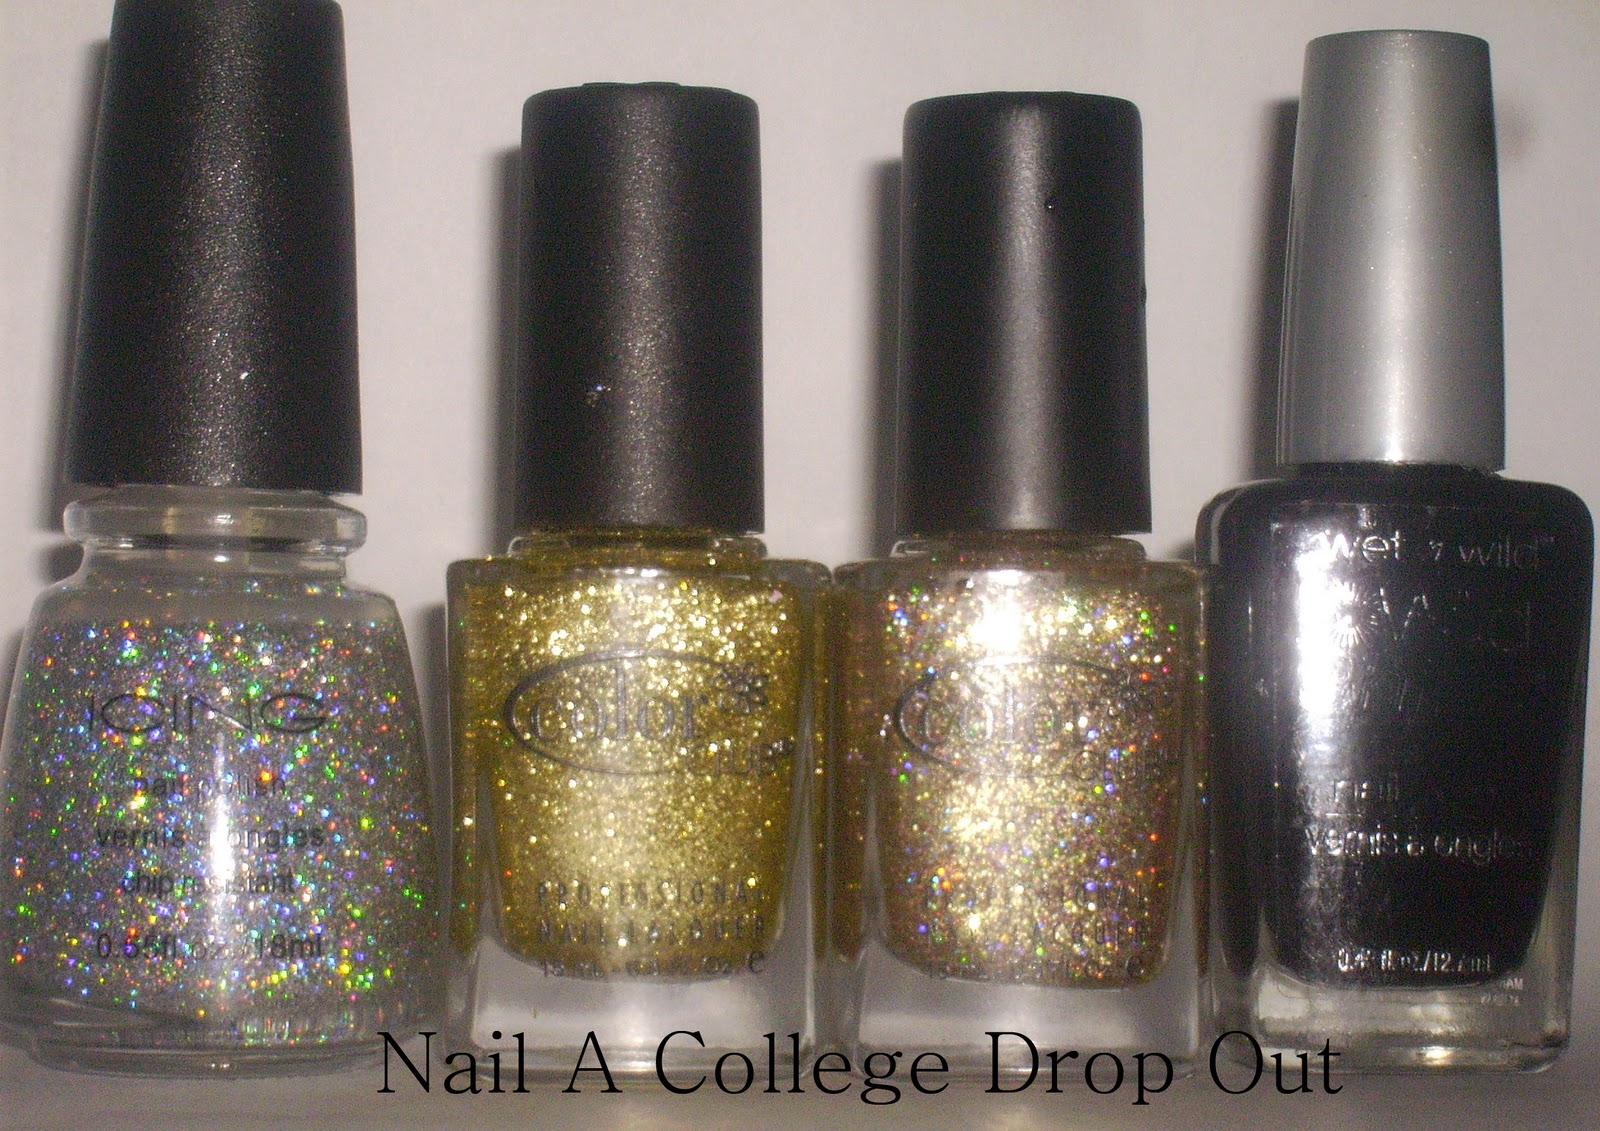 Nail A College Drop Out: Holo Kitty Says Purrrrr!